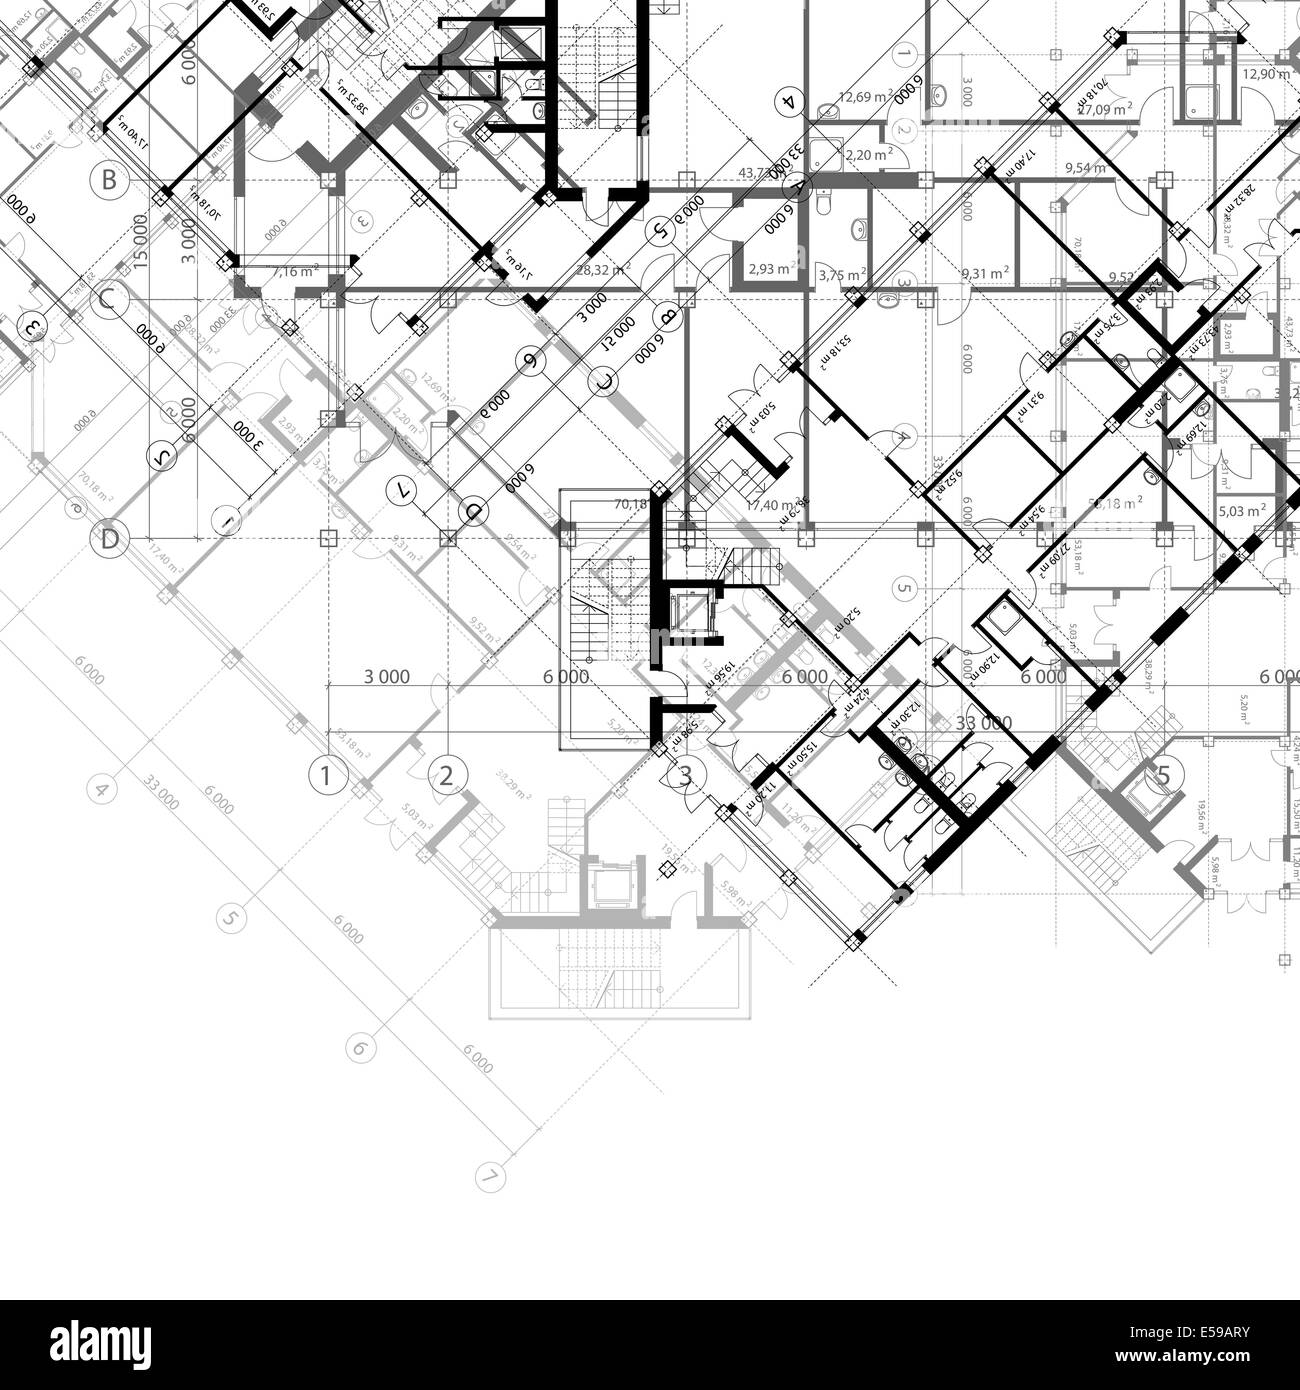 Architectural Black And White Background With Plans Of Building